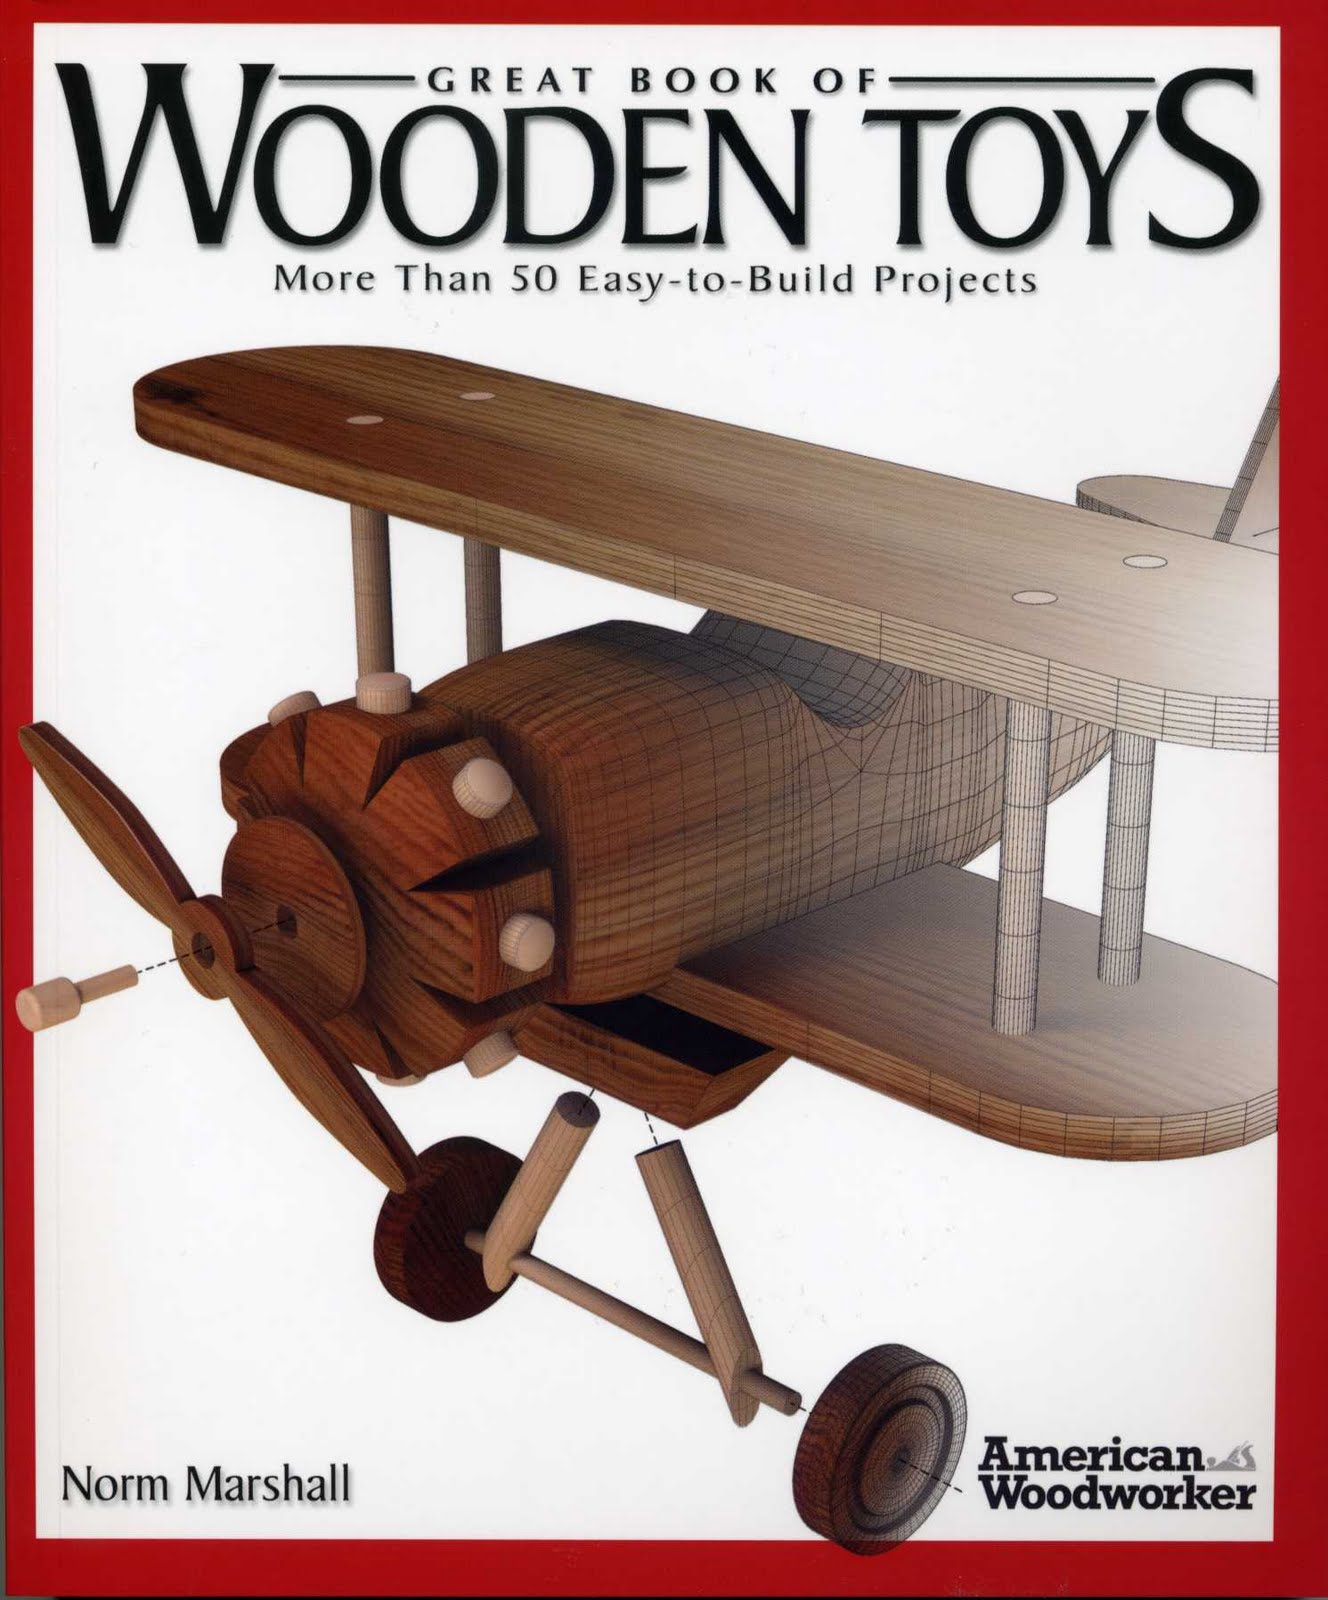 sherwood creations: great book of wooden toys book